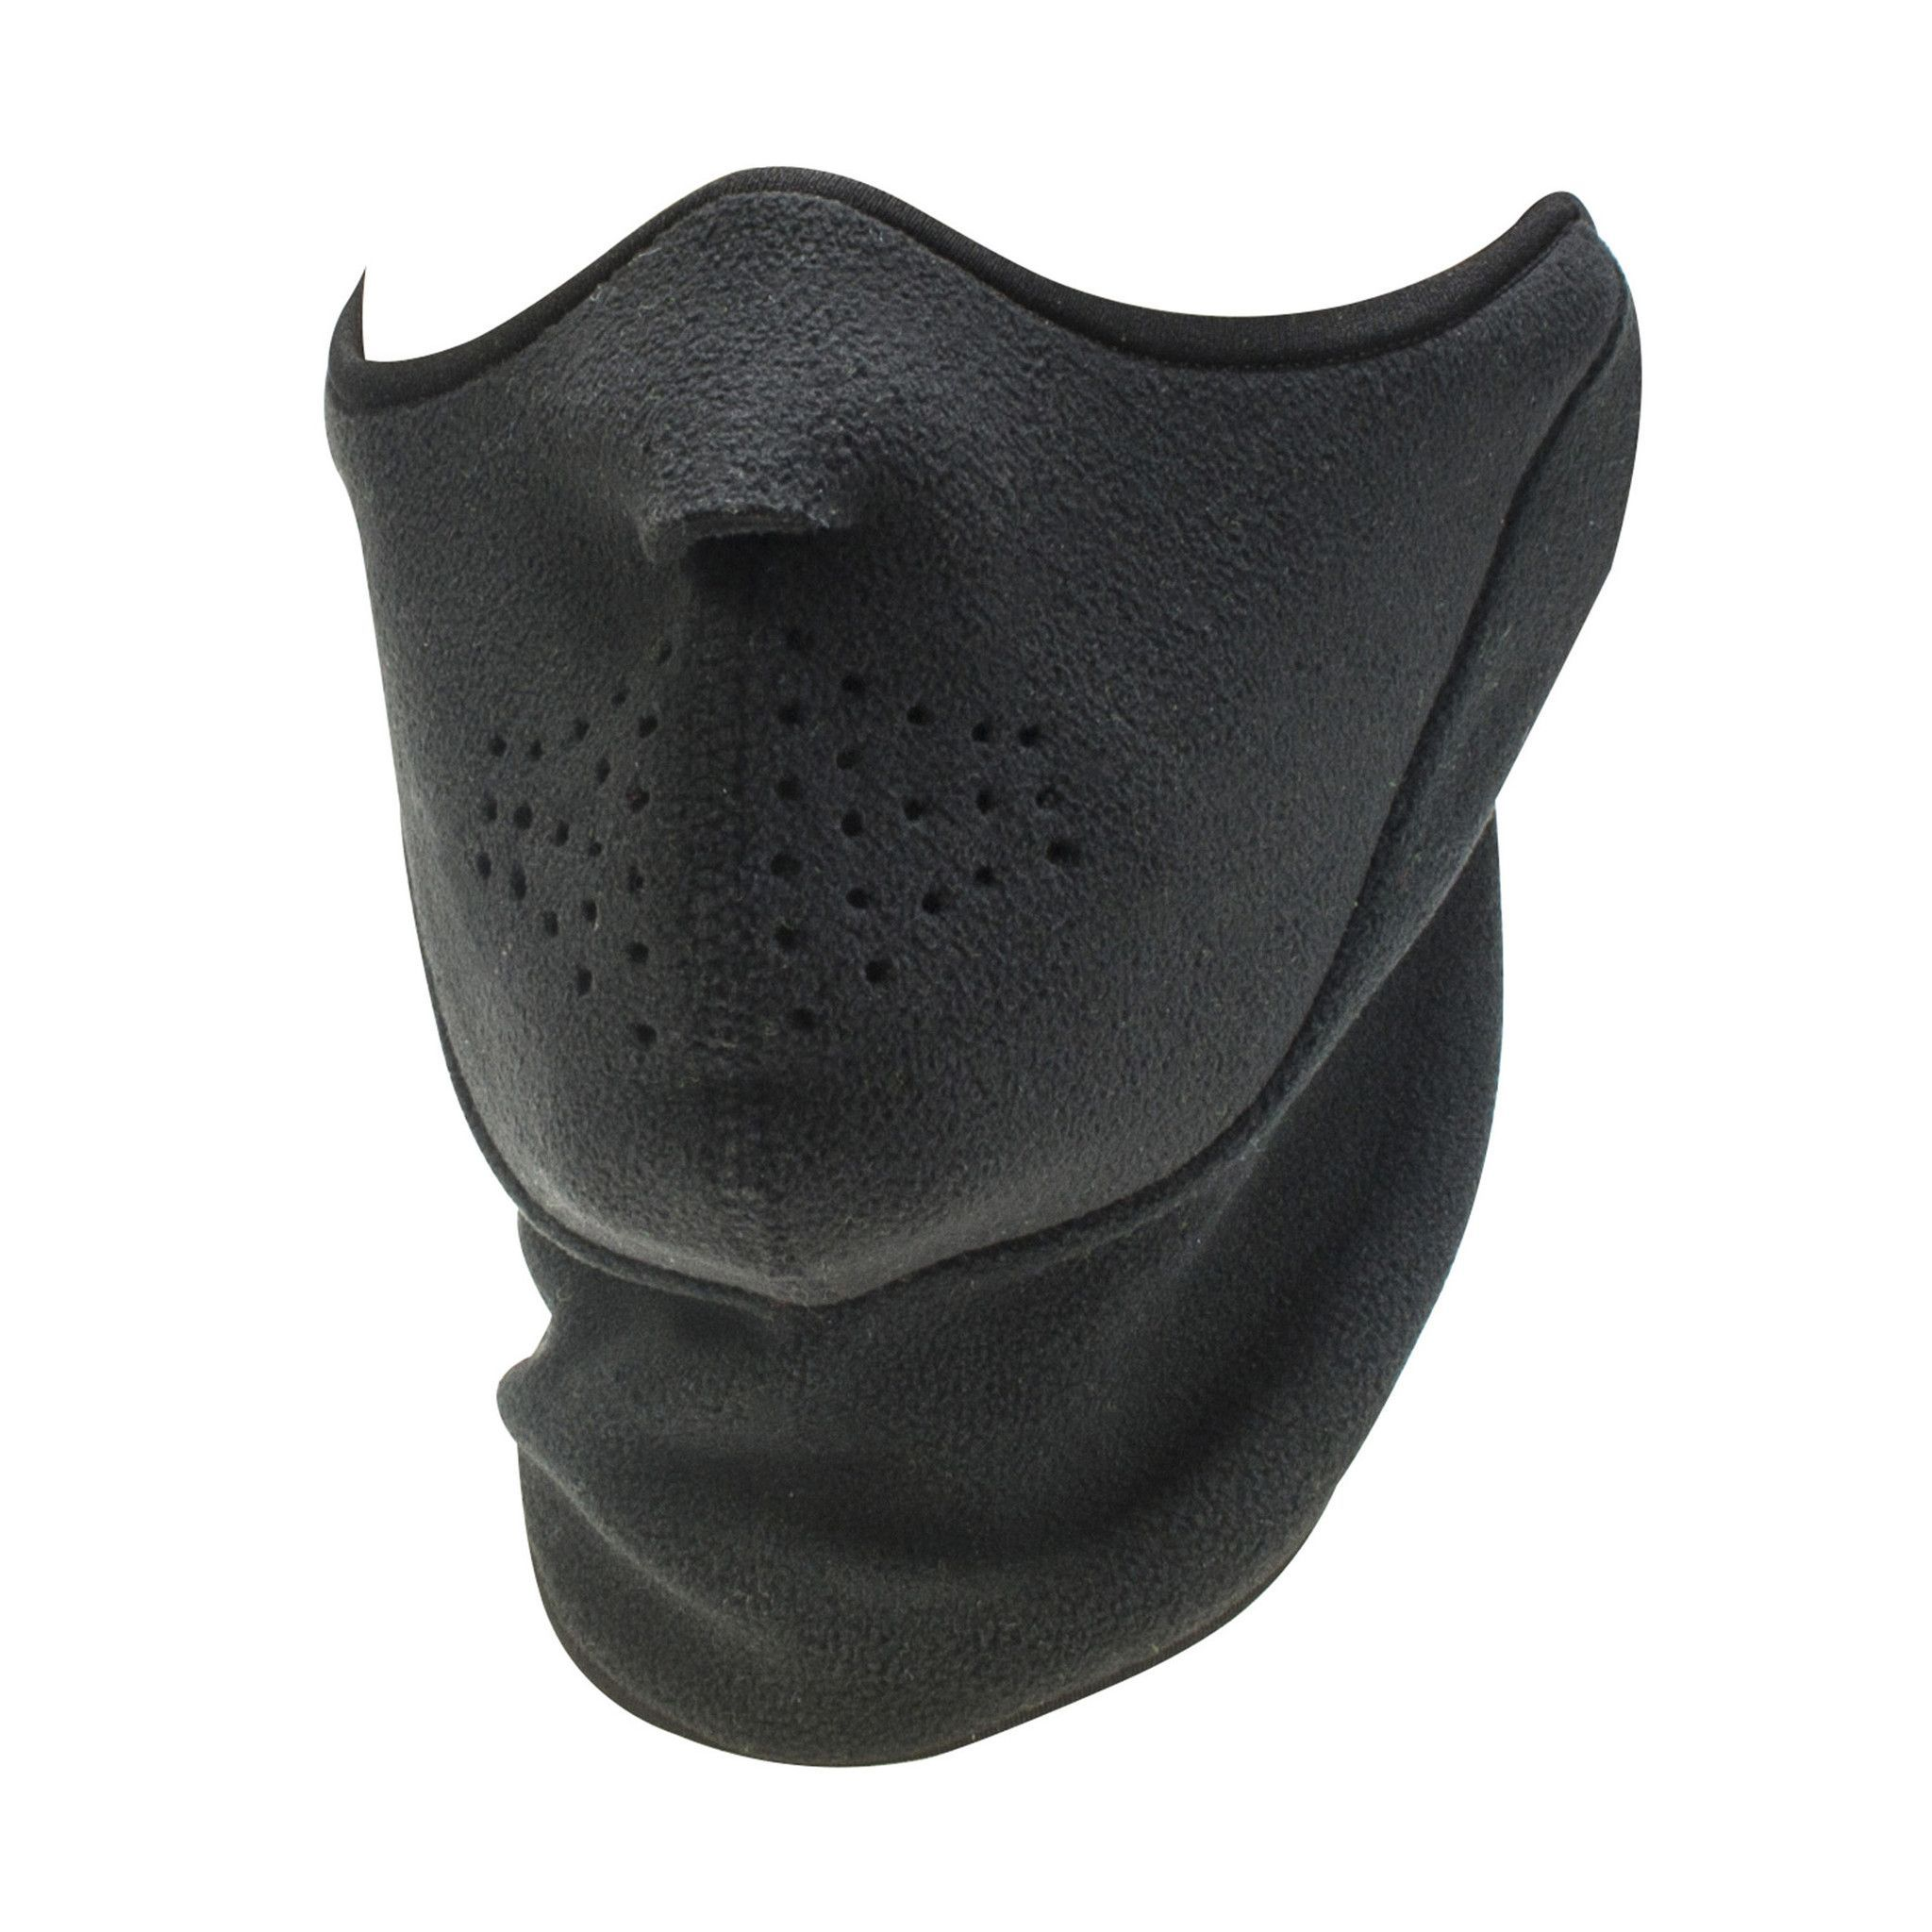 Our Half Mask Comes In One Black Color And Is Made Of Warm Neo